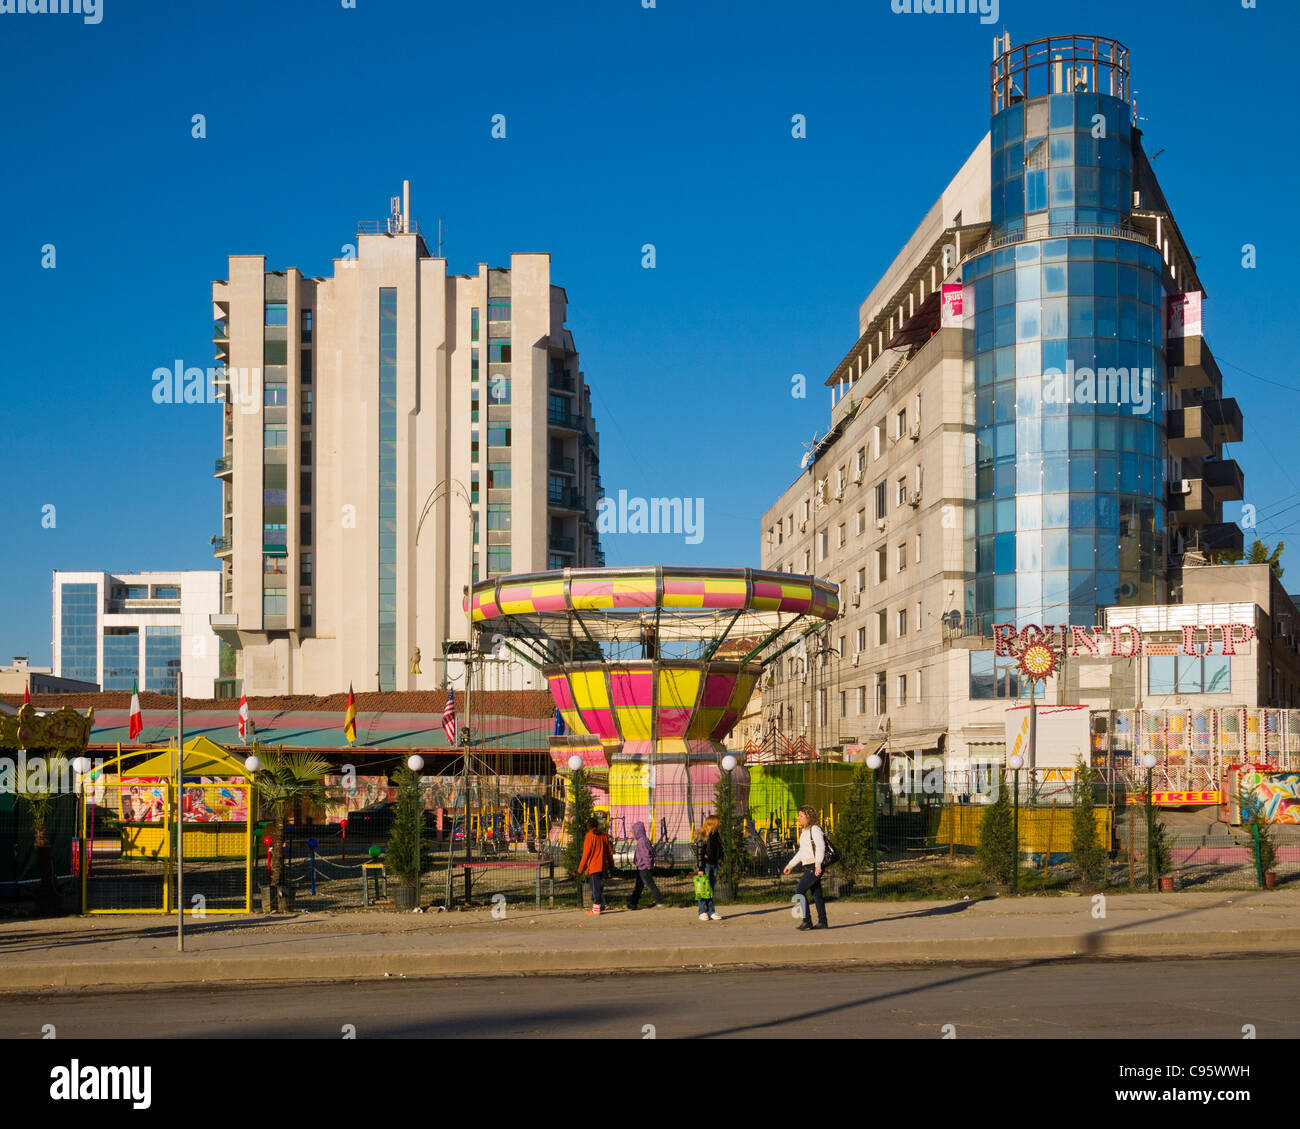 Urban funfair in Tirana, Albania - Stock Image